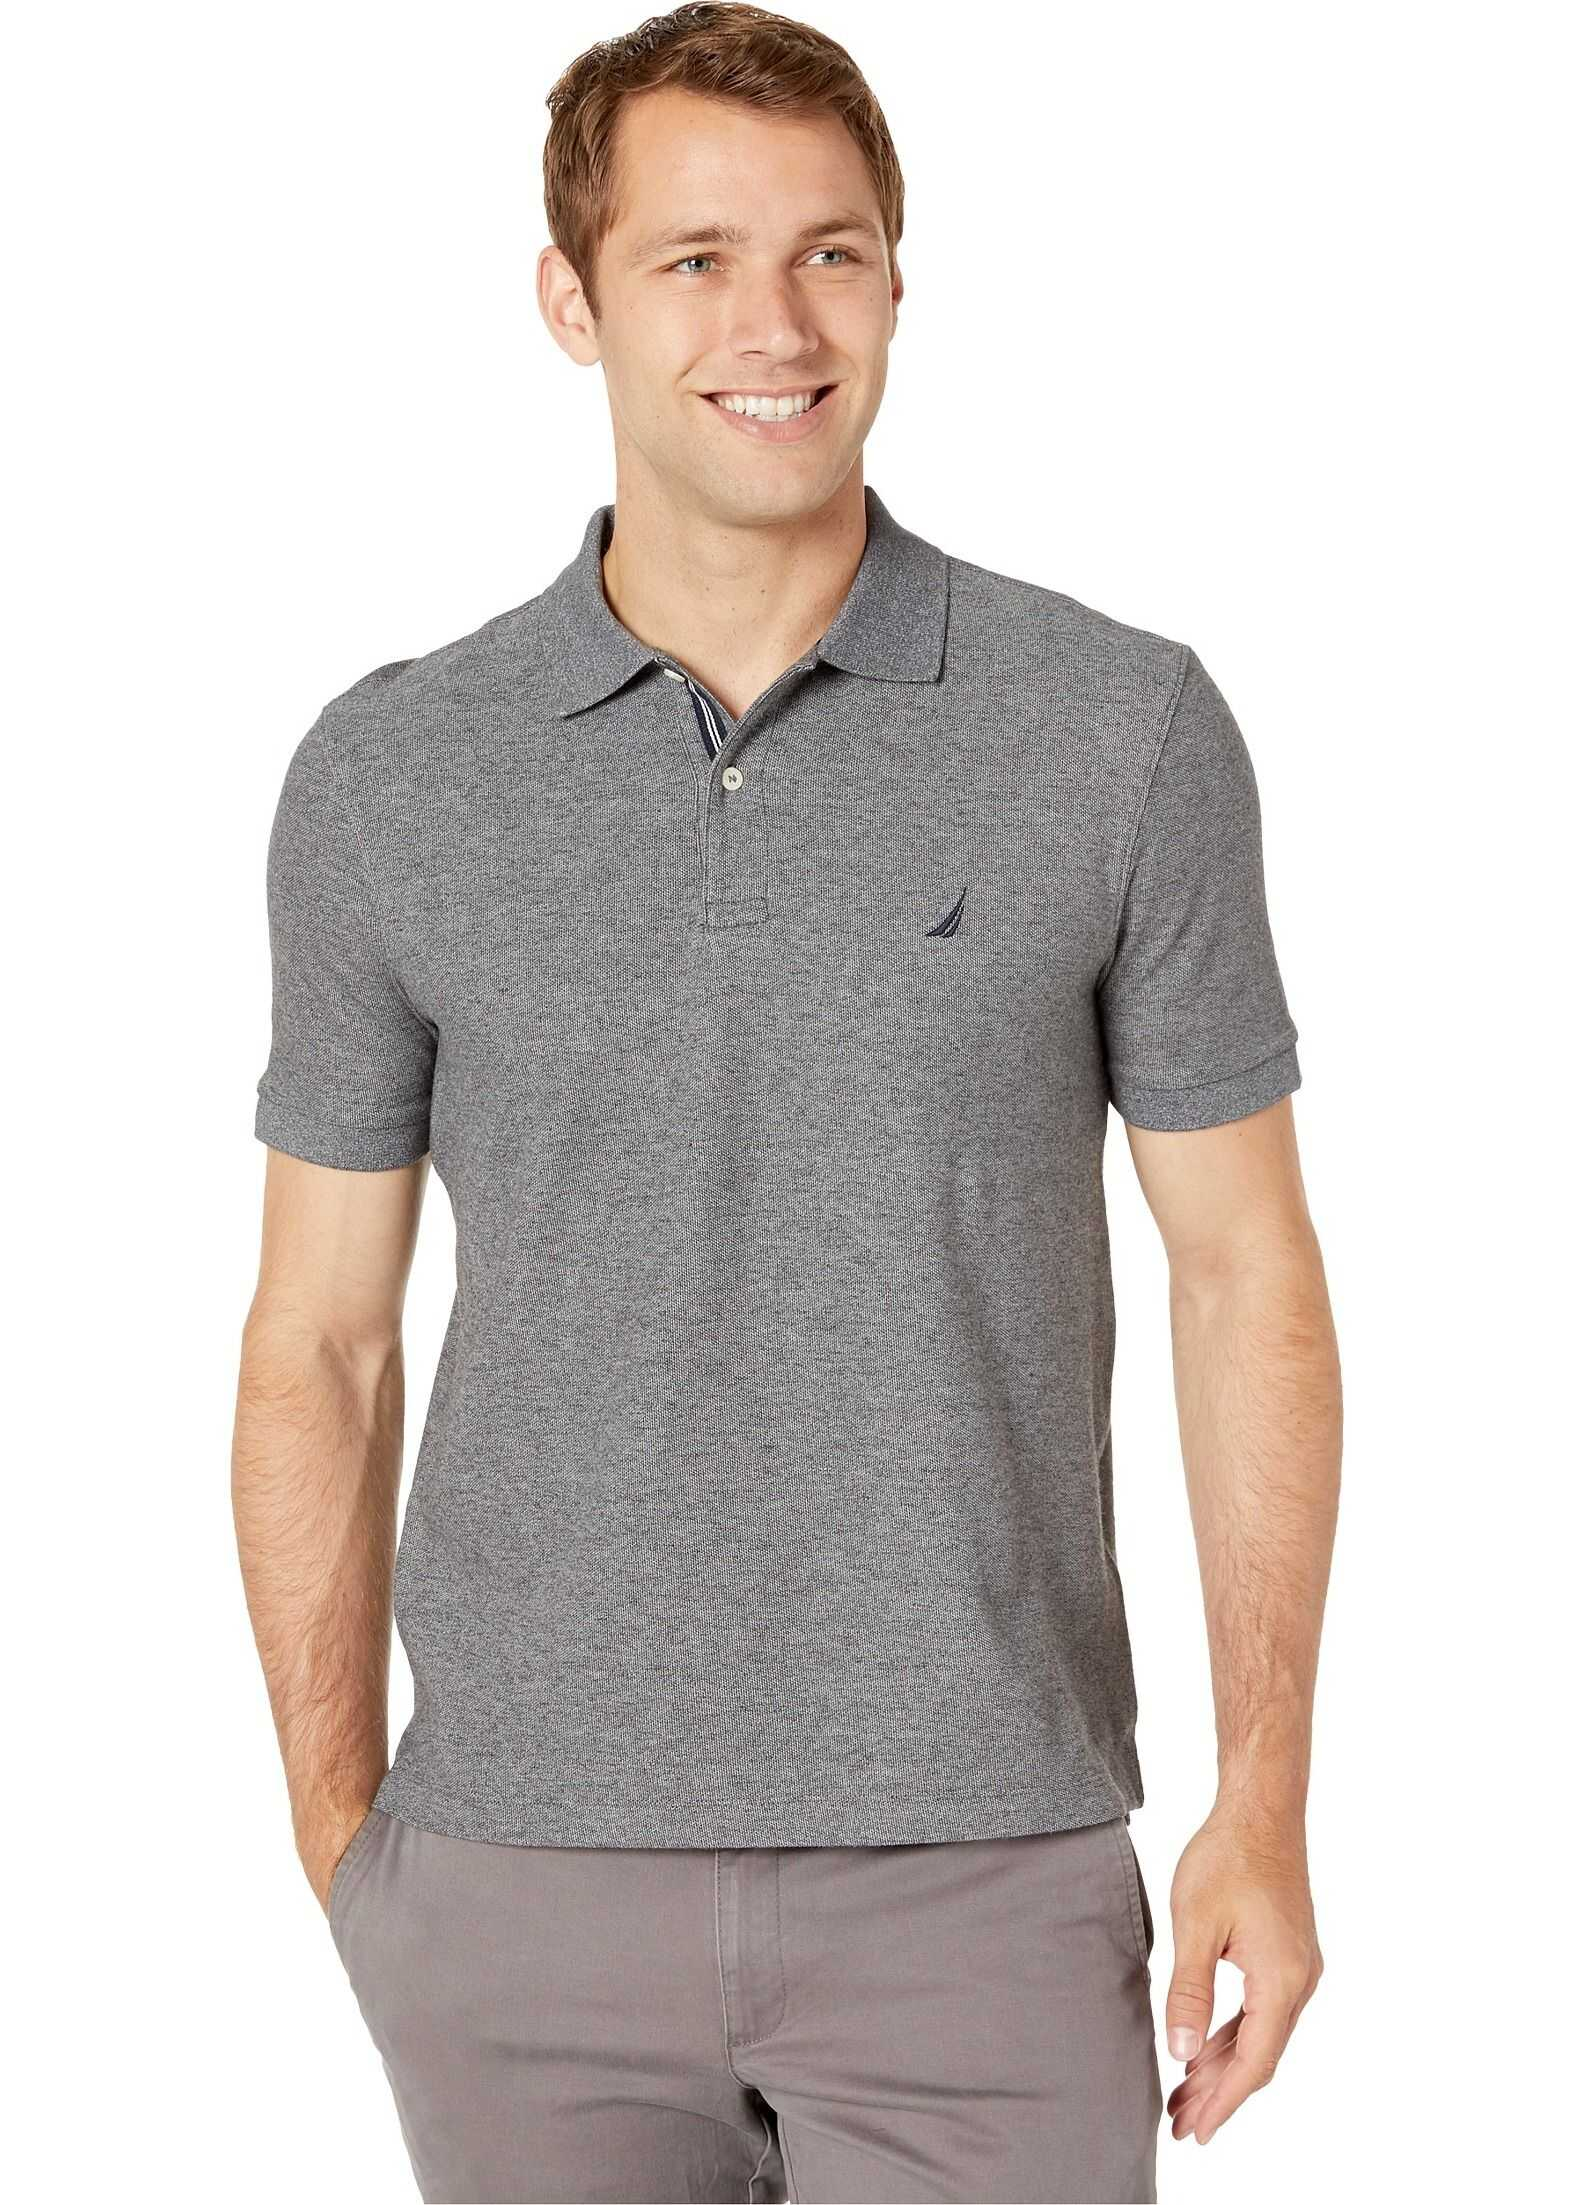 Nautica Solid FCA Deck Shirt Charcoal Heather